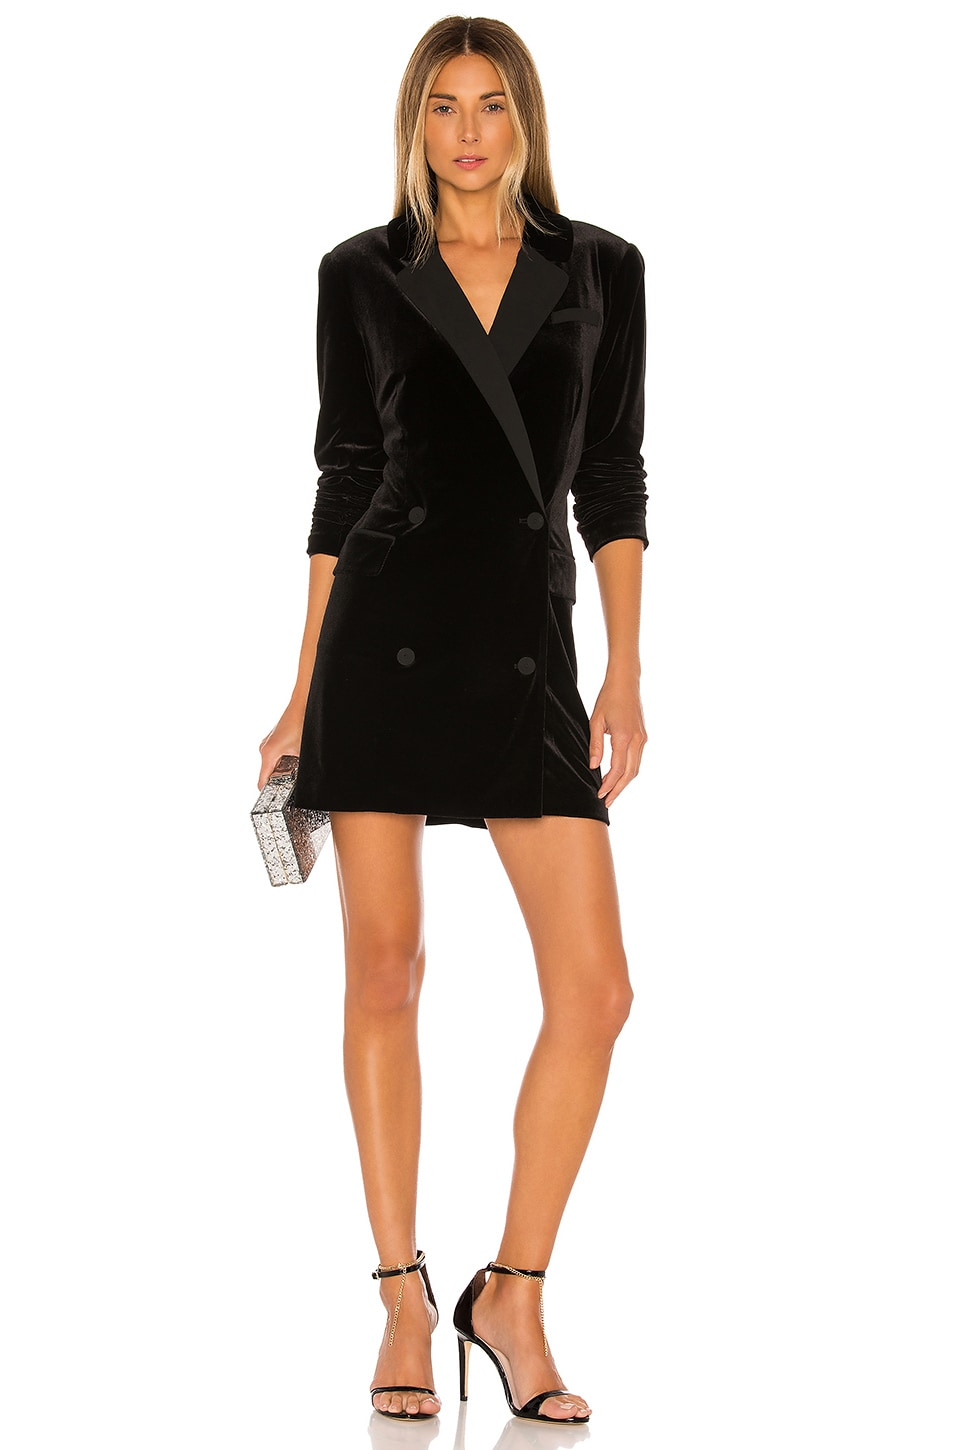 Ruched Velvet Blazer Dress             1. STATE                                                                                                                                         Sale price:                                                                       CA$ 141.86                                                                  Previous price:                                                                       CA$ 201.31 12